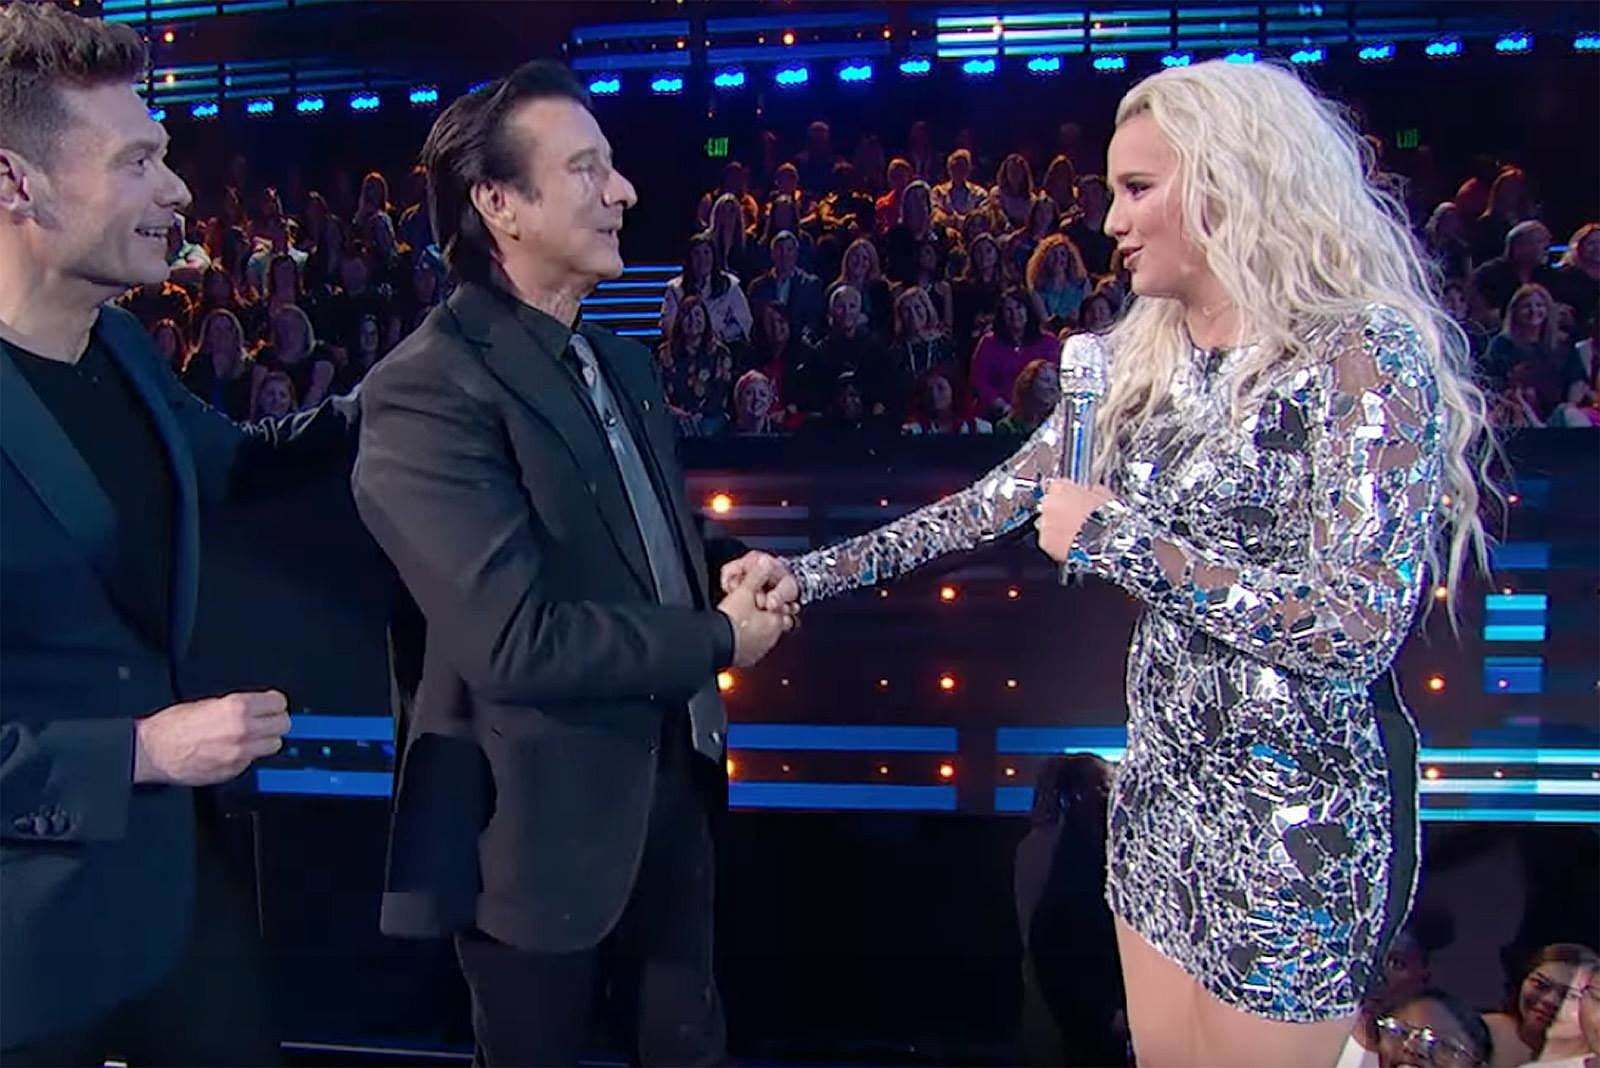 Watch Steve Perry Surprise 'American Idol' Contestant Who Sang 'Don't Stop Believin""